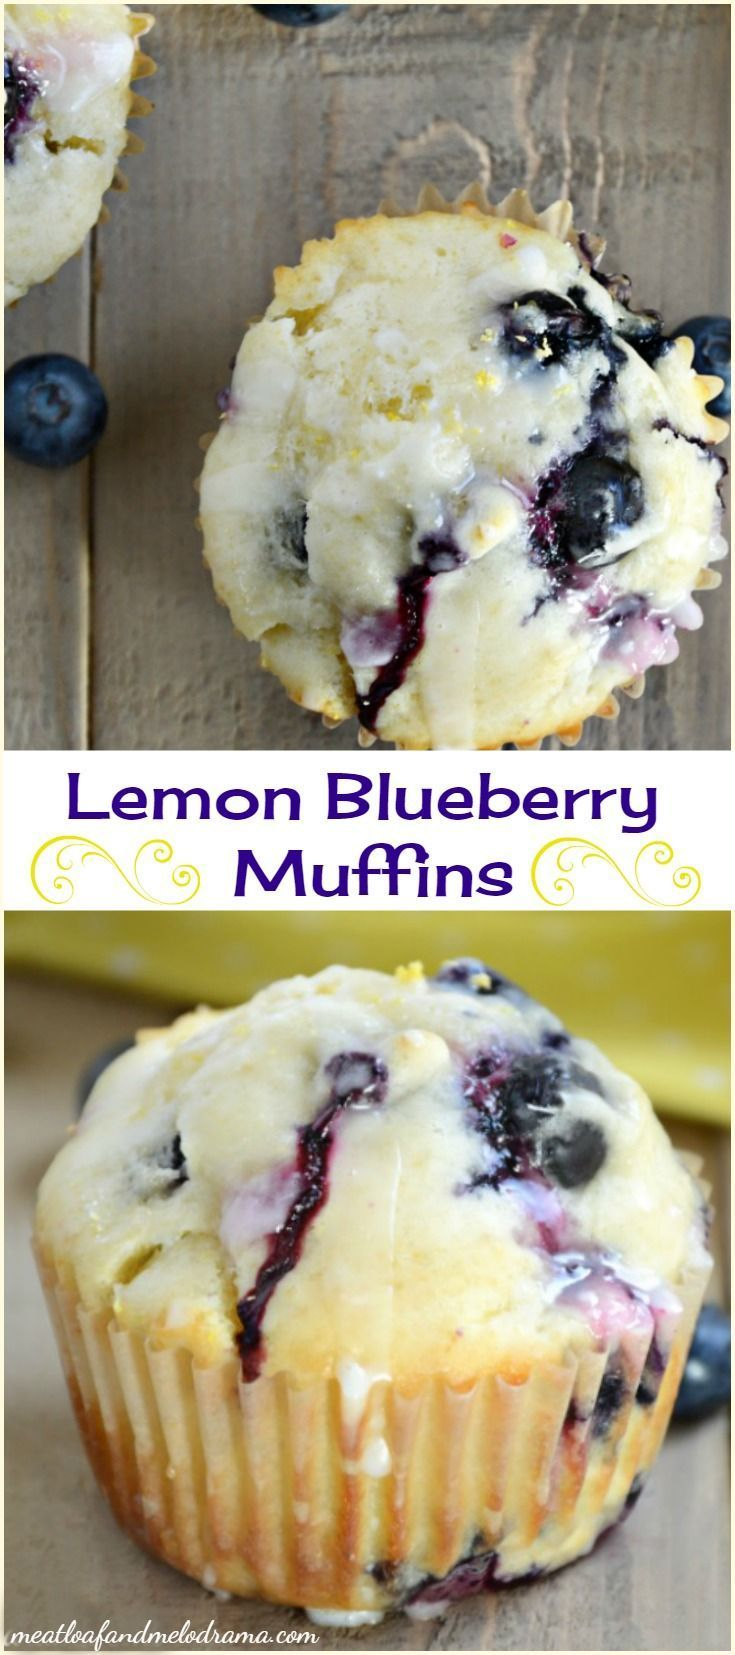 Glazed Lemon Blueberry Muffins is part of Muffin recipes blueberry - Homemade glazed lemon blueberry muffins are bursting with fresh blueberries and topped with a tangy lemon glaze